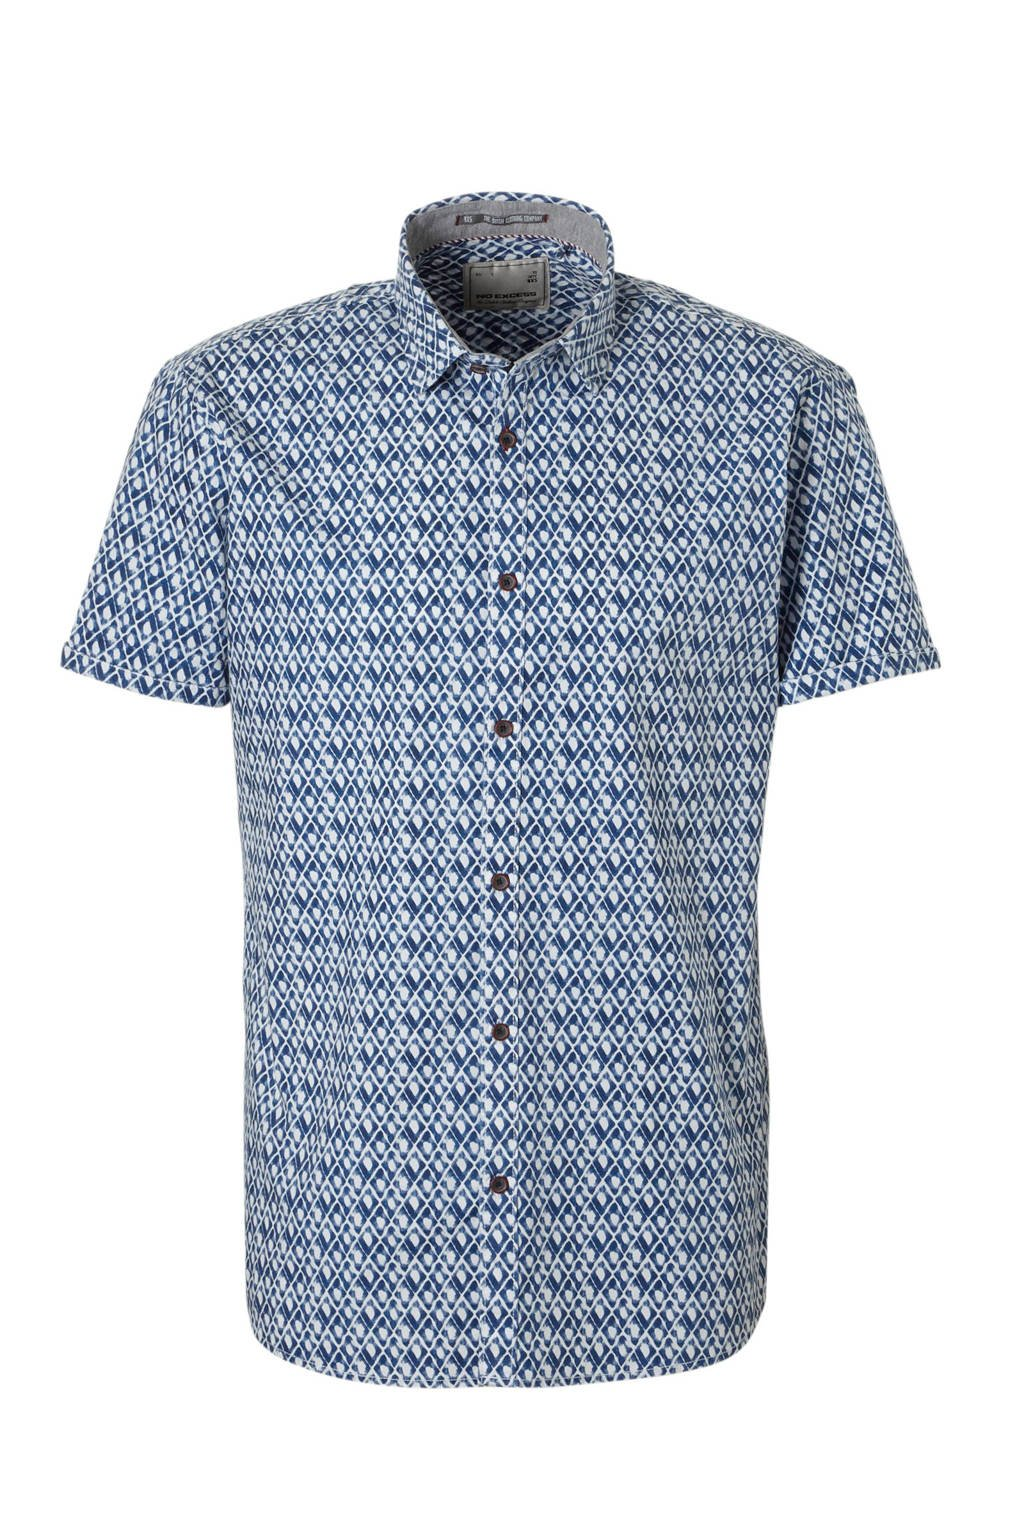 No Excess overhemd allover print, blauw/ wit